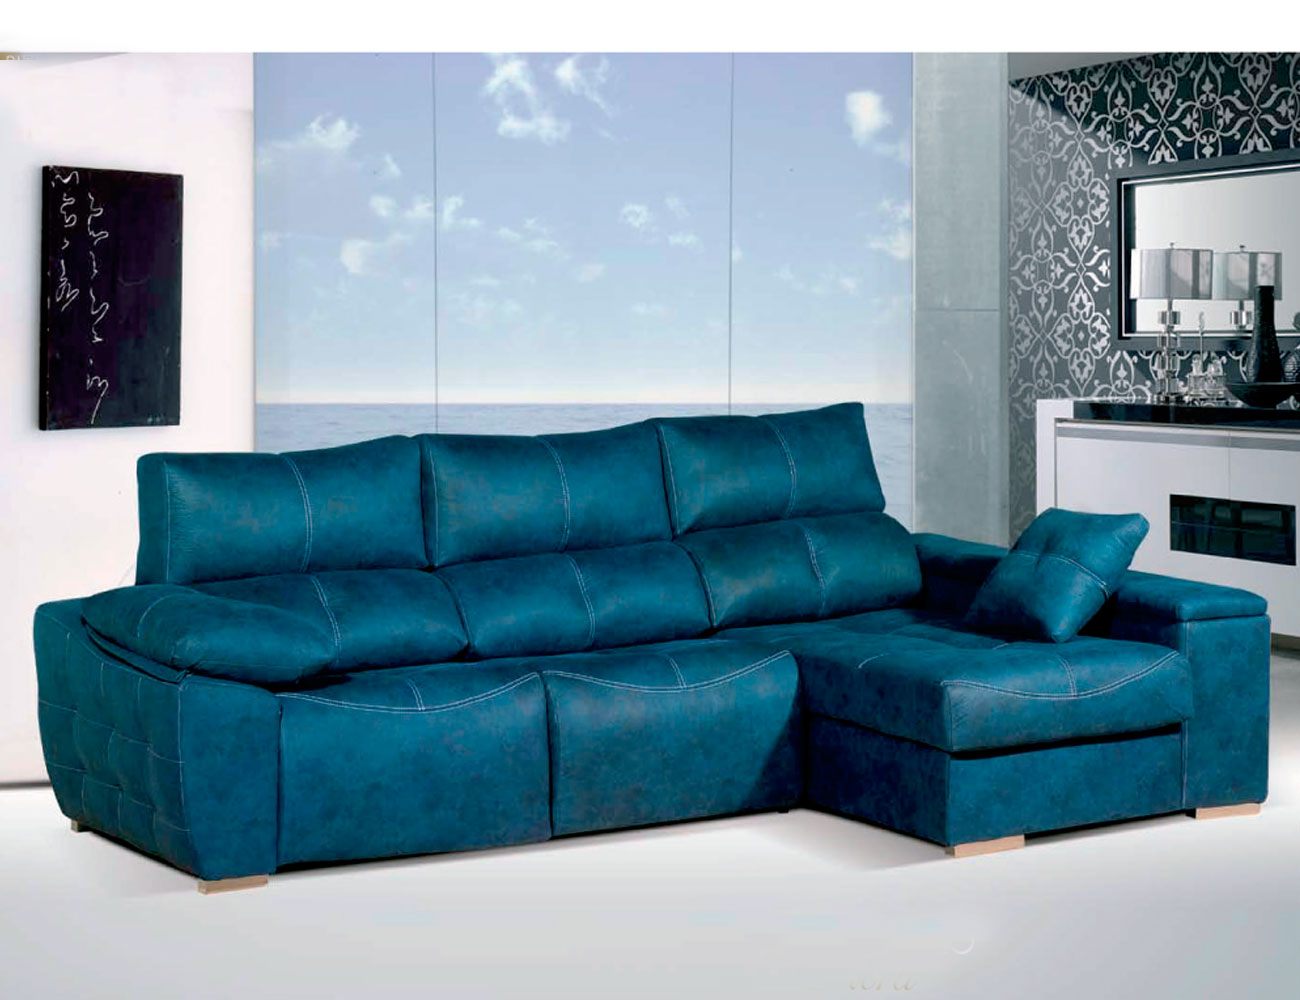 Sofa chaiselongue relax 2 motores anti manchas turquesa24